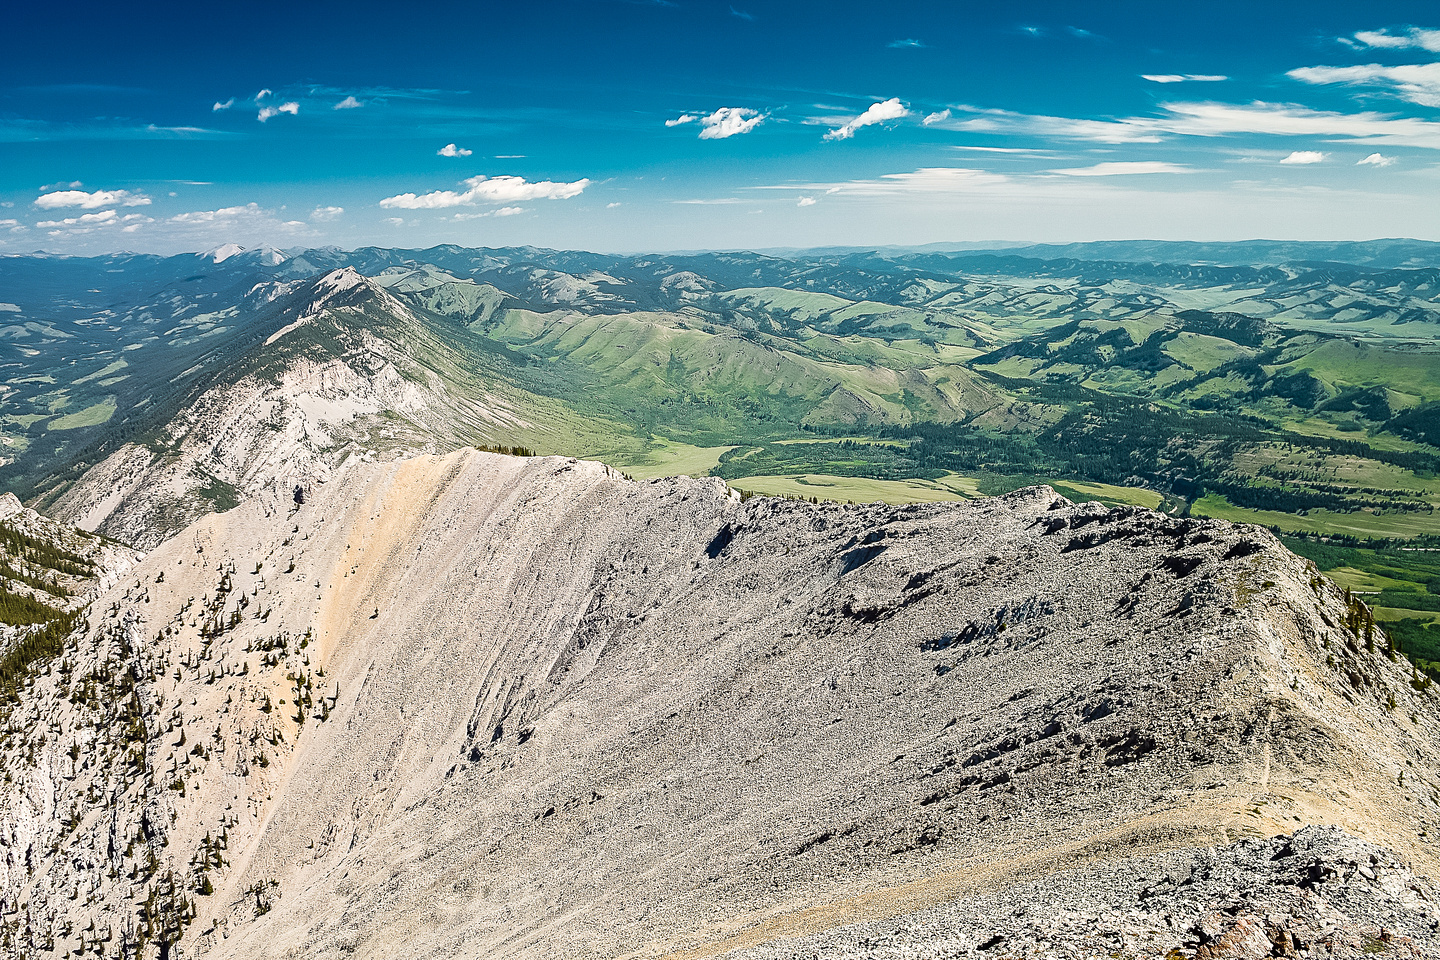 From left to right there is Livingstone Ridge, Camp Creek Ridge, Miles Coulee, Whaleback Ridge, Black Mountain.